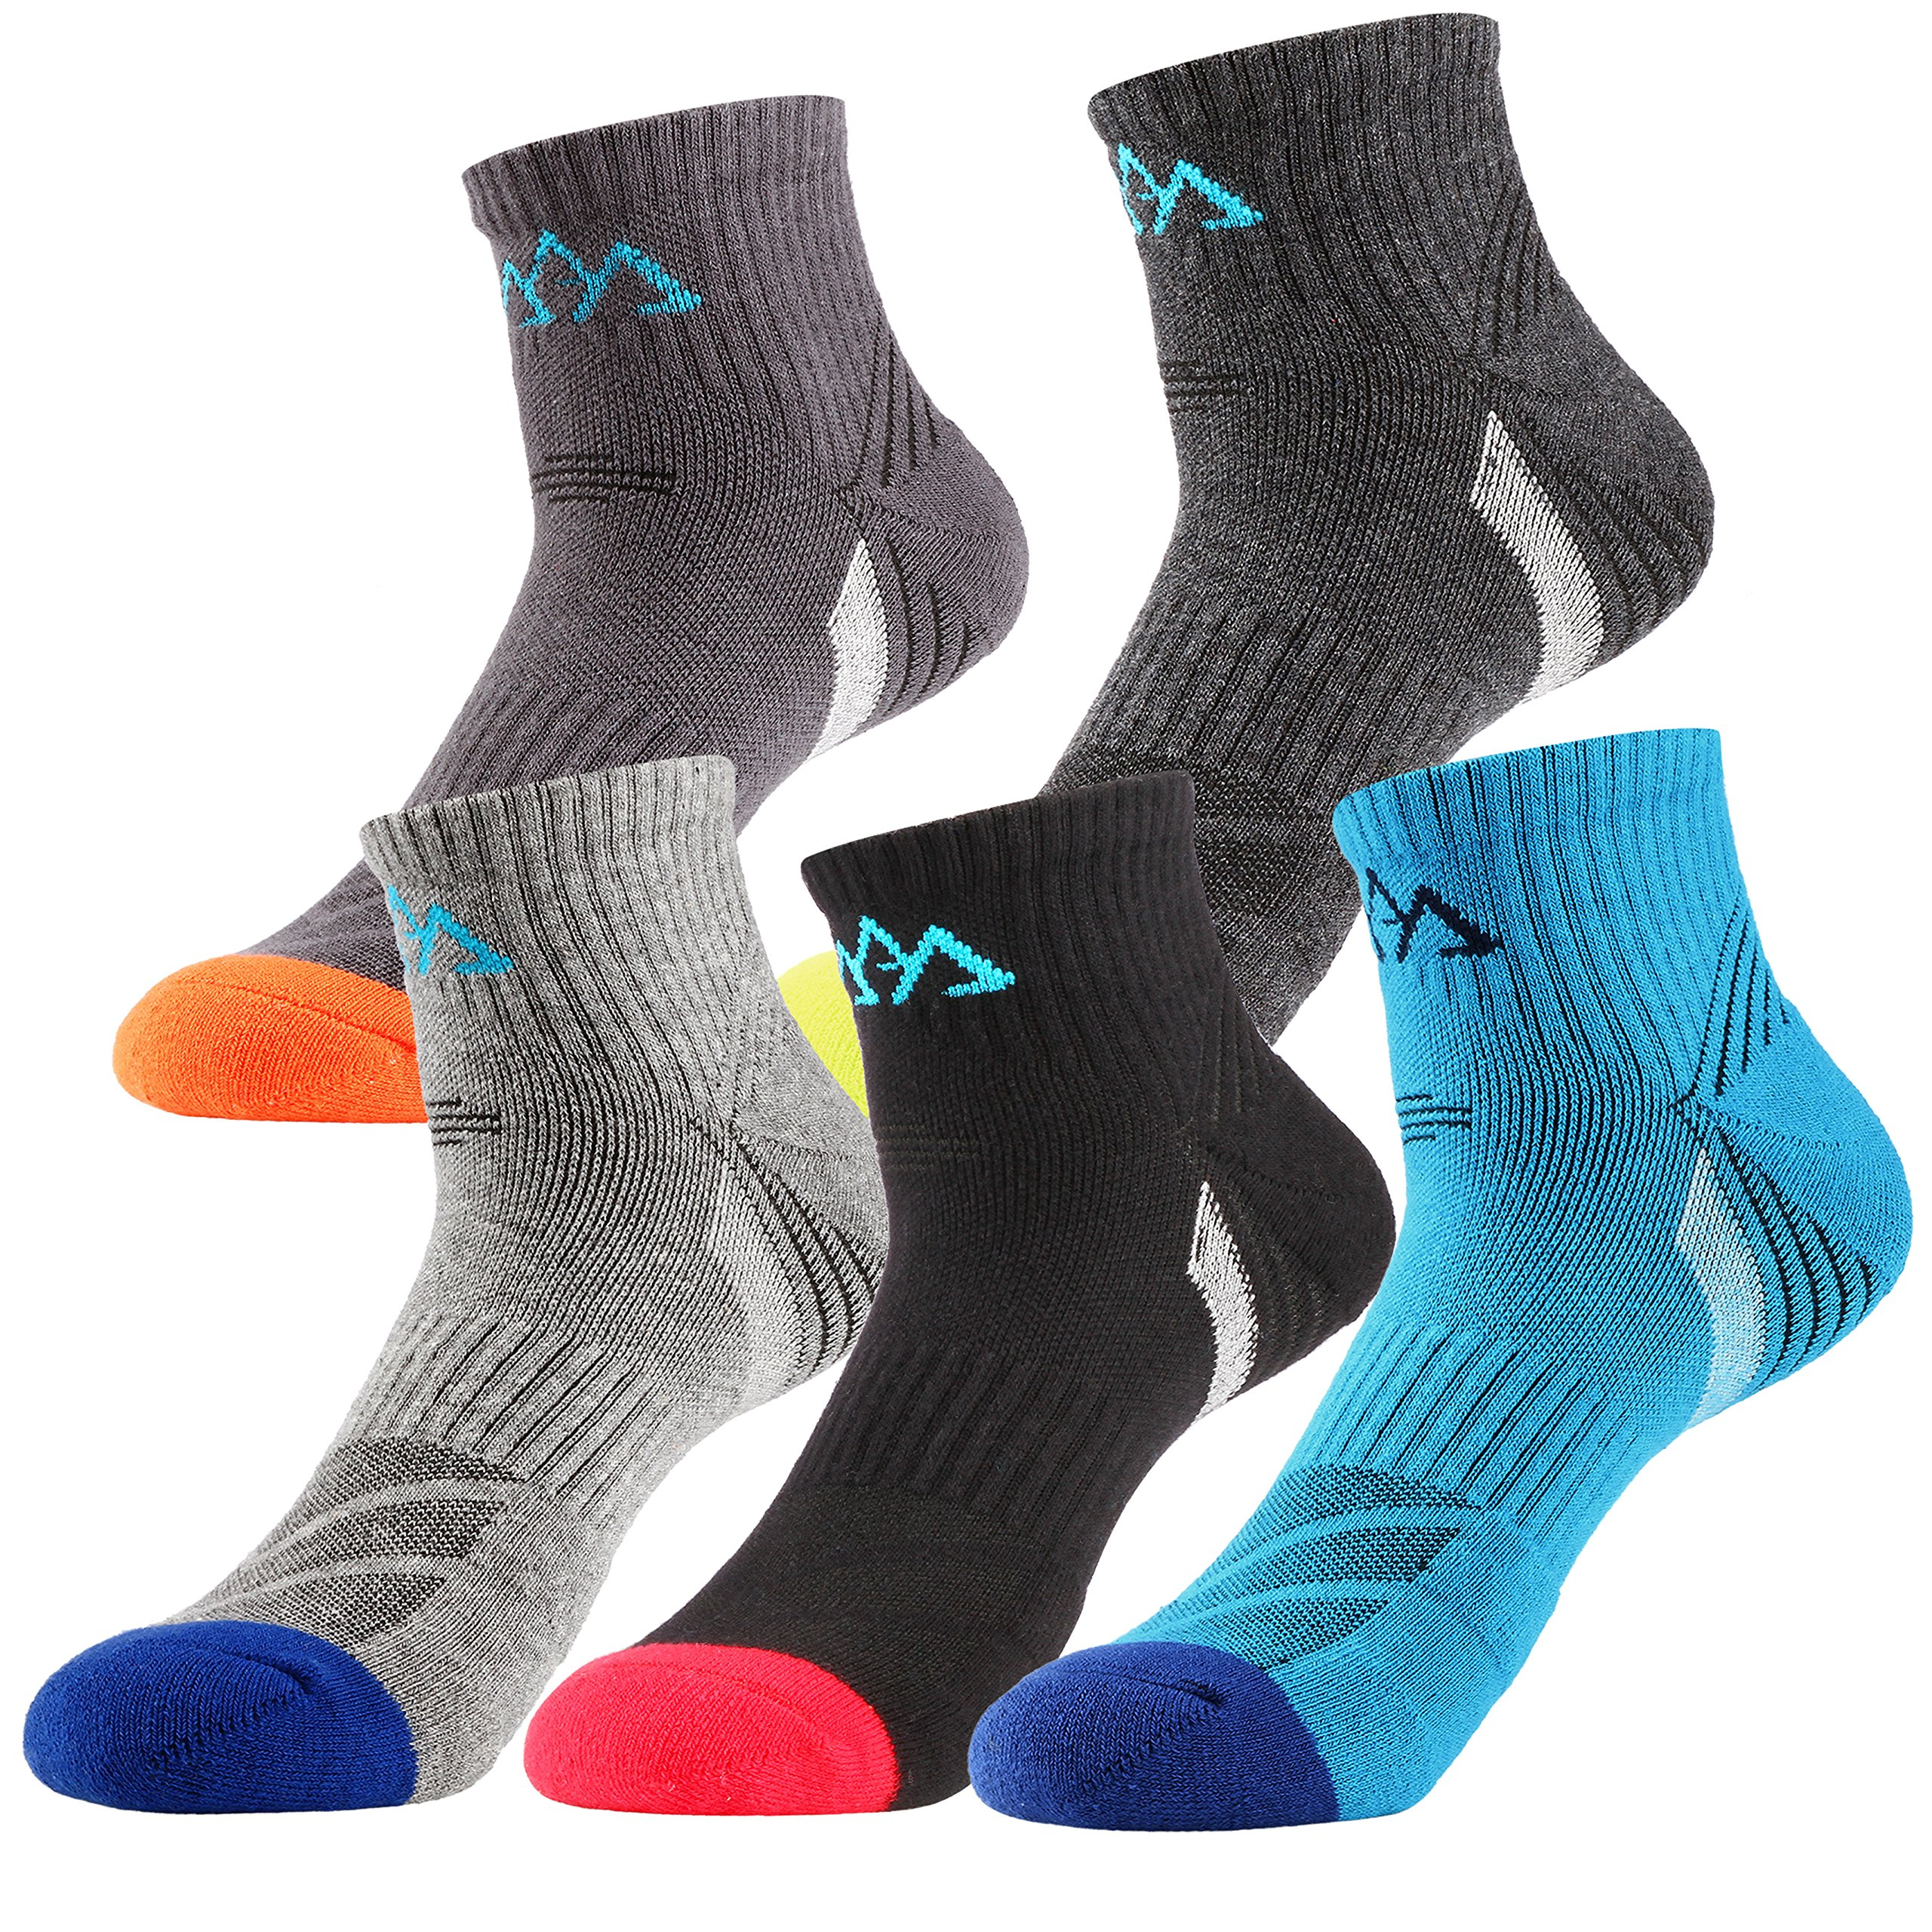 Will Well 5 Pack Mens Hiking Socks, Micro Crew Half Thickness Cushion Running Sports Performance Summer by Will Well (Image #5)